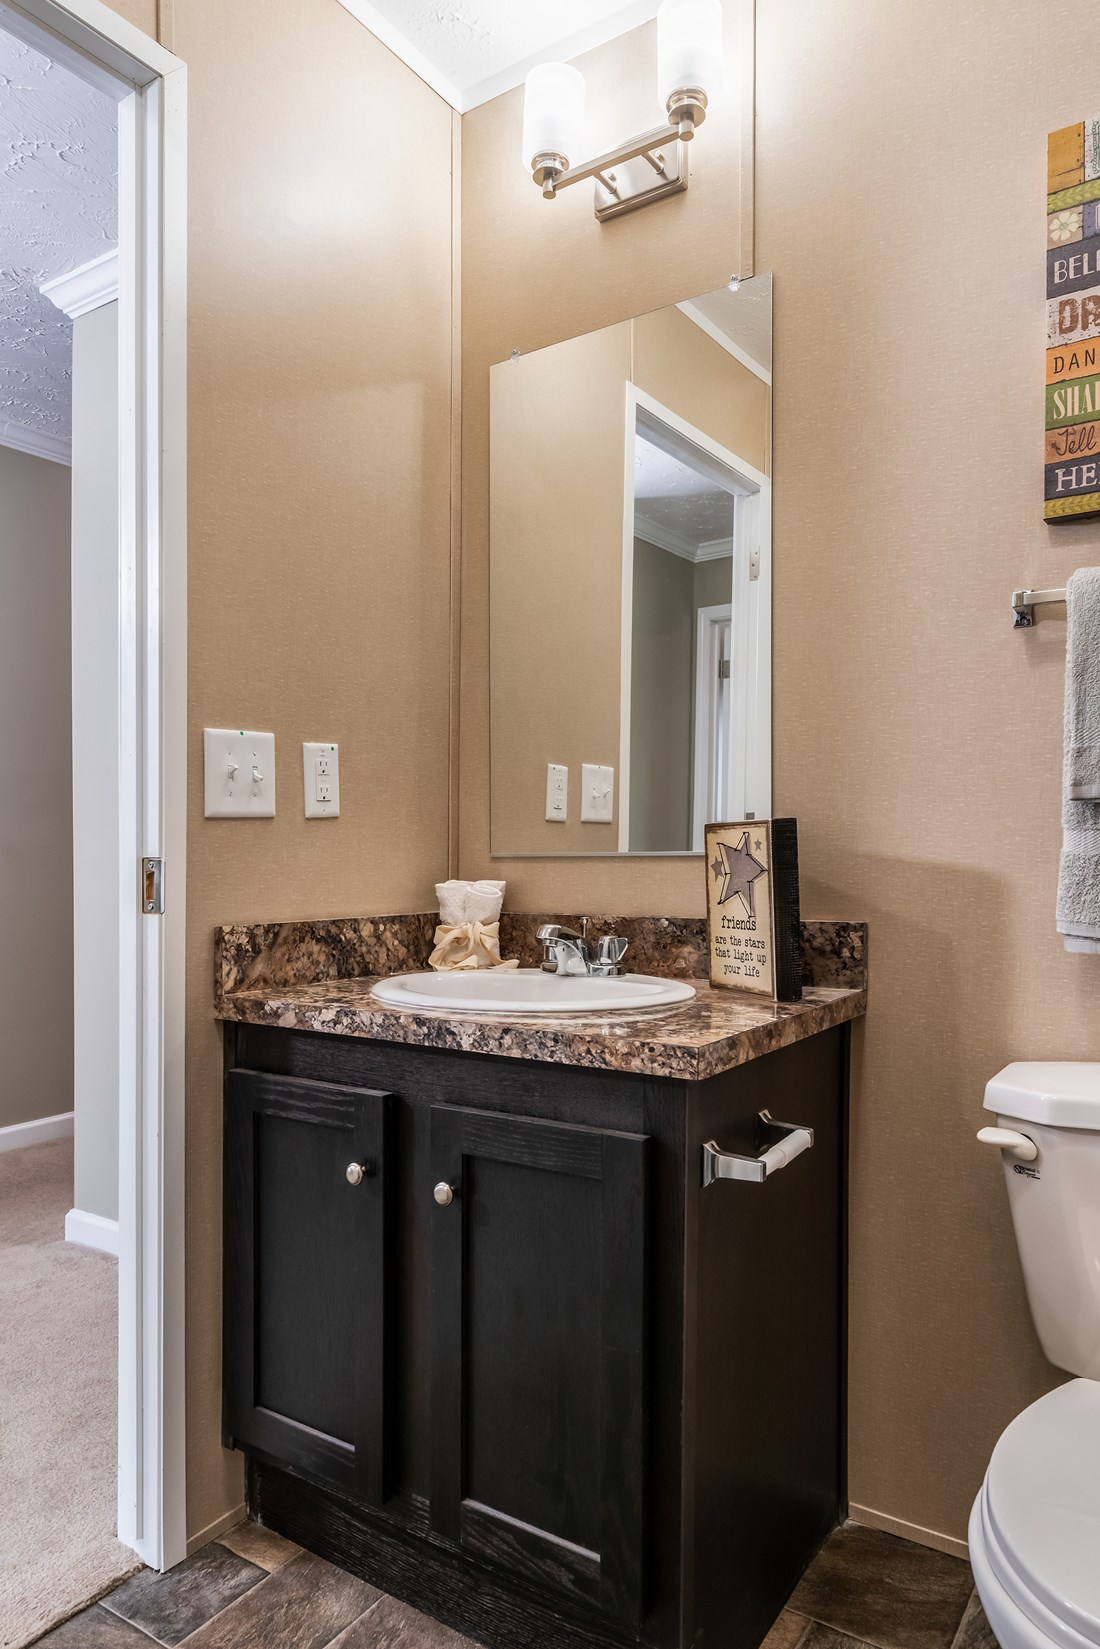 The 5604 ENTERPRISE 4 6428 Guest Bathroom. This Manufactured Mobile Home features 3 bedrooms and 2 baths.